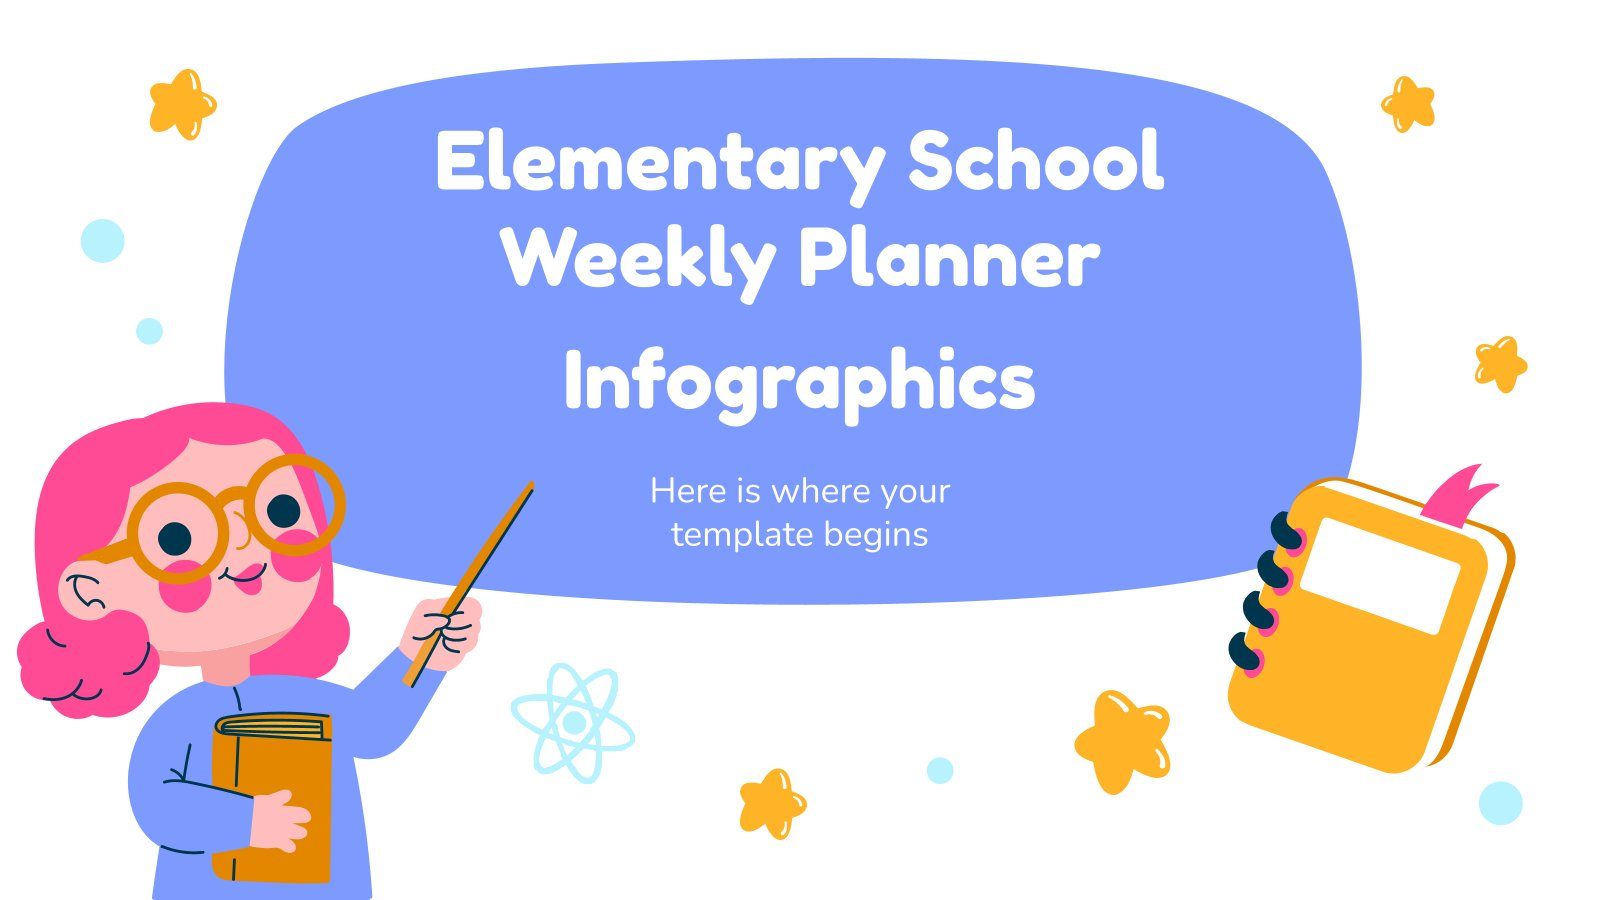 Elementary School Weekly Planner Infographics presentation template